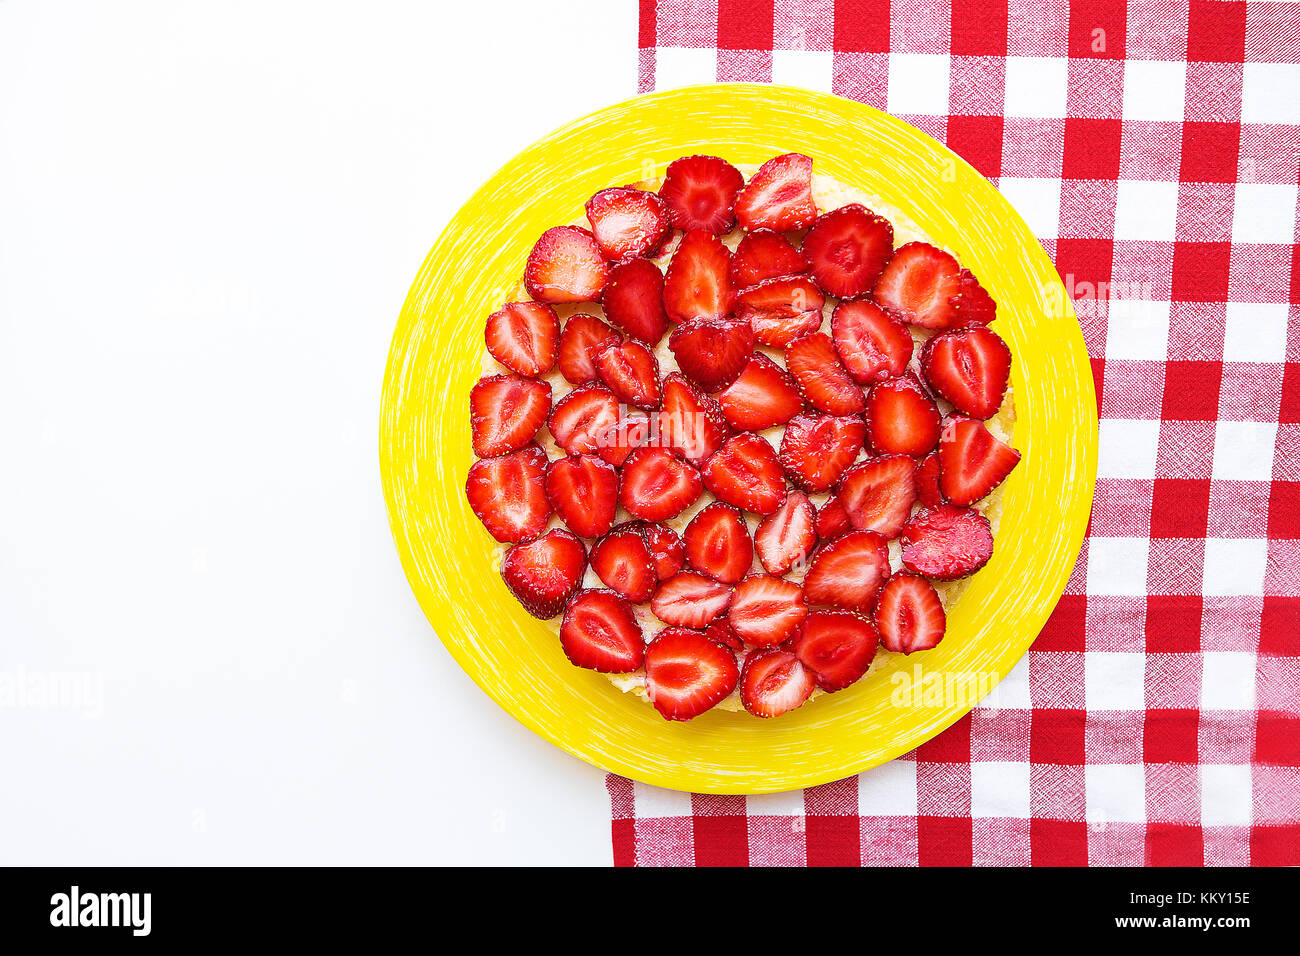 Bright and delicious strawberry cake on a red napkin in a cage - Stock Image